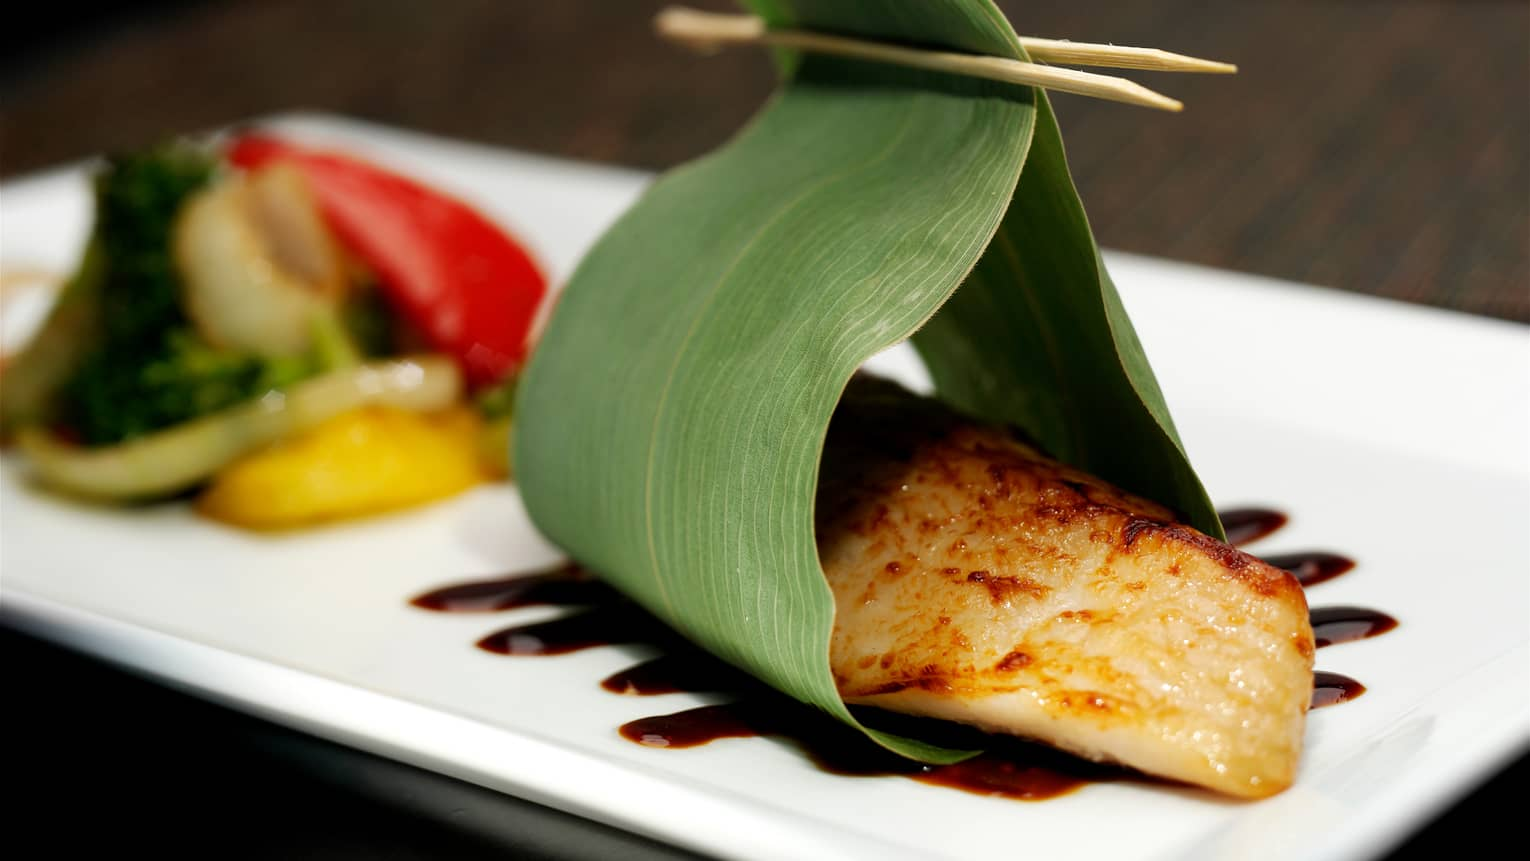 Miso Black Cod filet wrapped in green leaf on white platter with sauce, vegetables